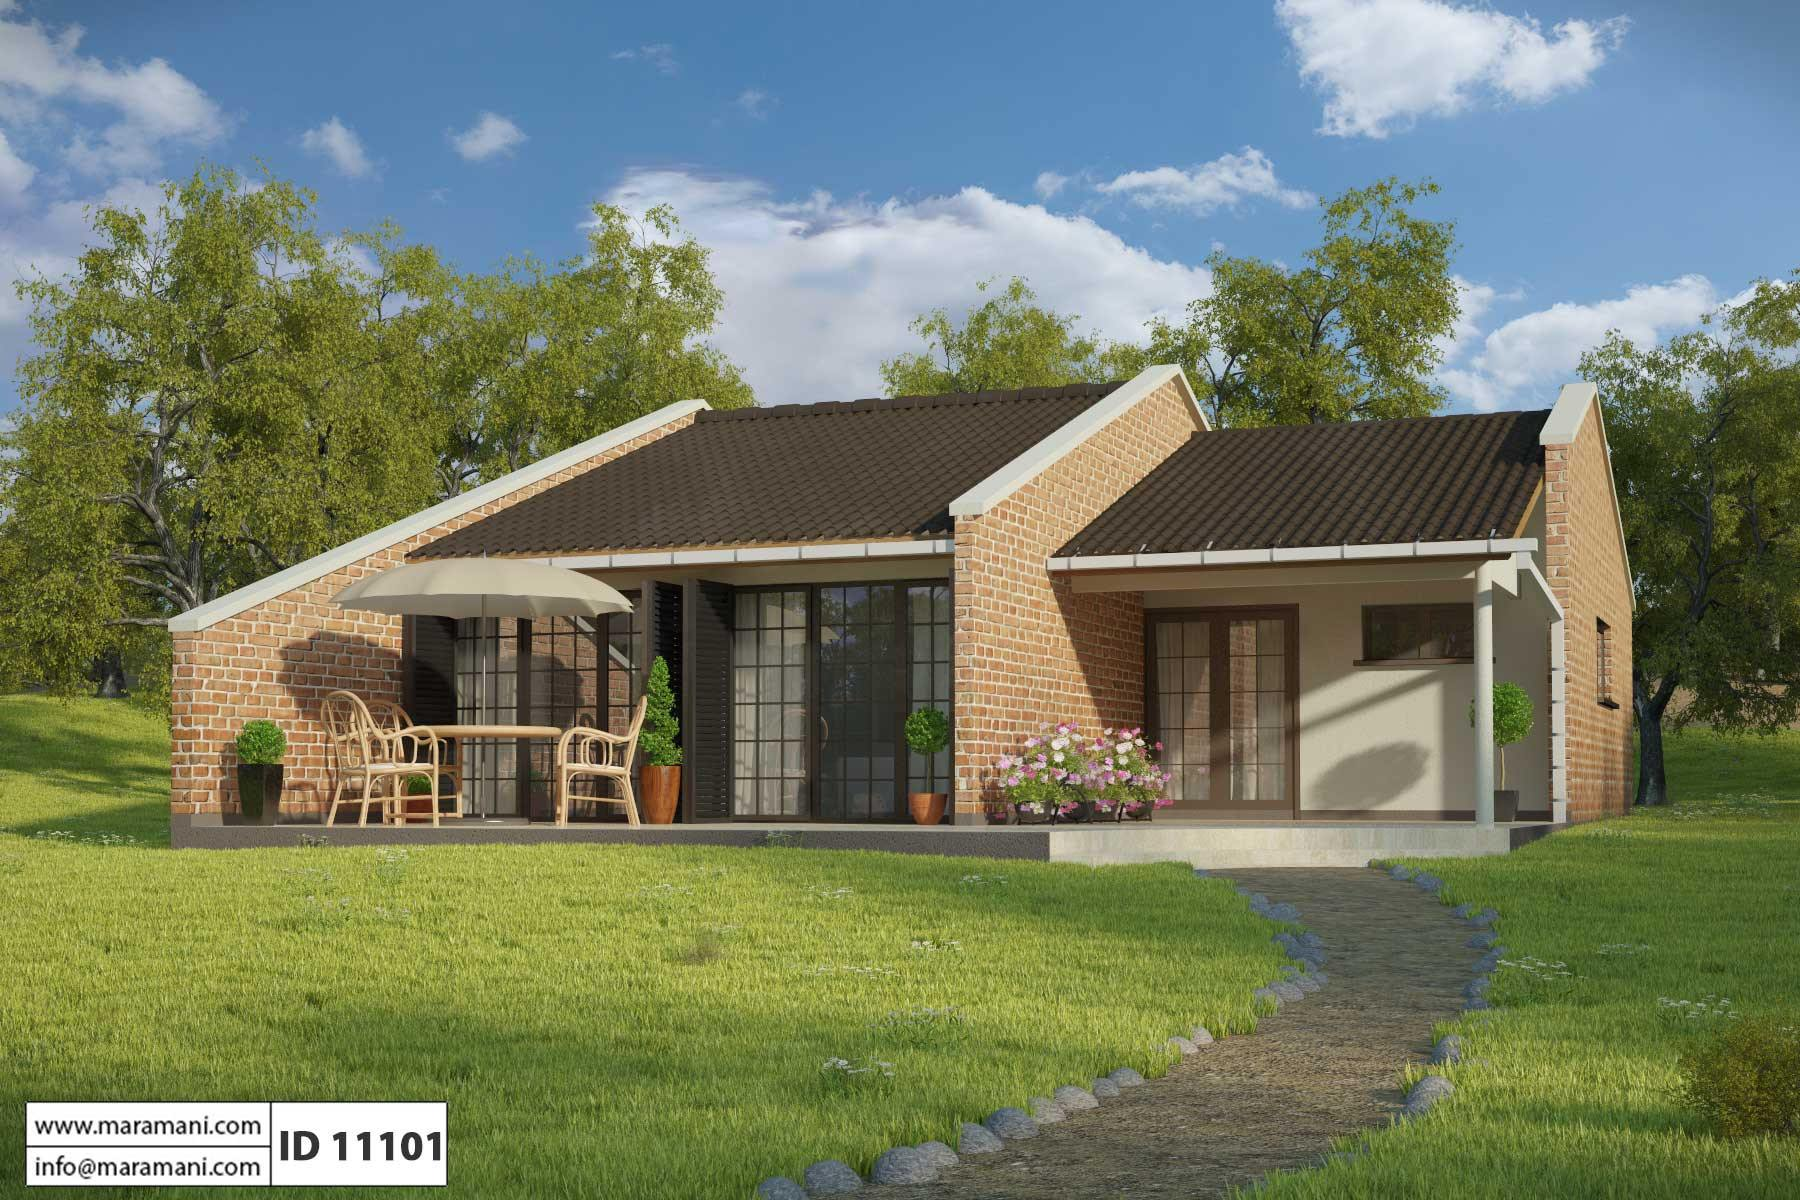 simple floor plan 1 bedroom id 11101 house designs by maramani rh maramani com 1 bedroom house to rent in luton 1 bedroom house for sale